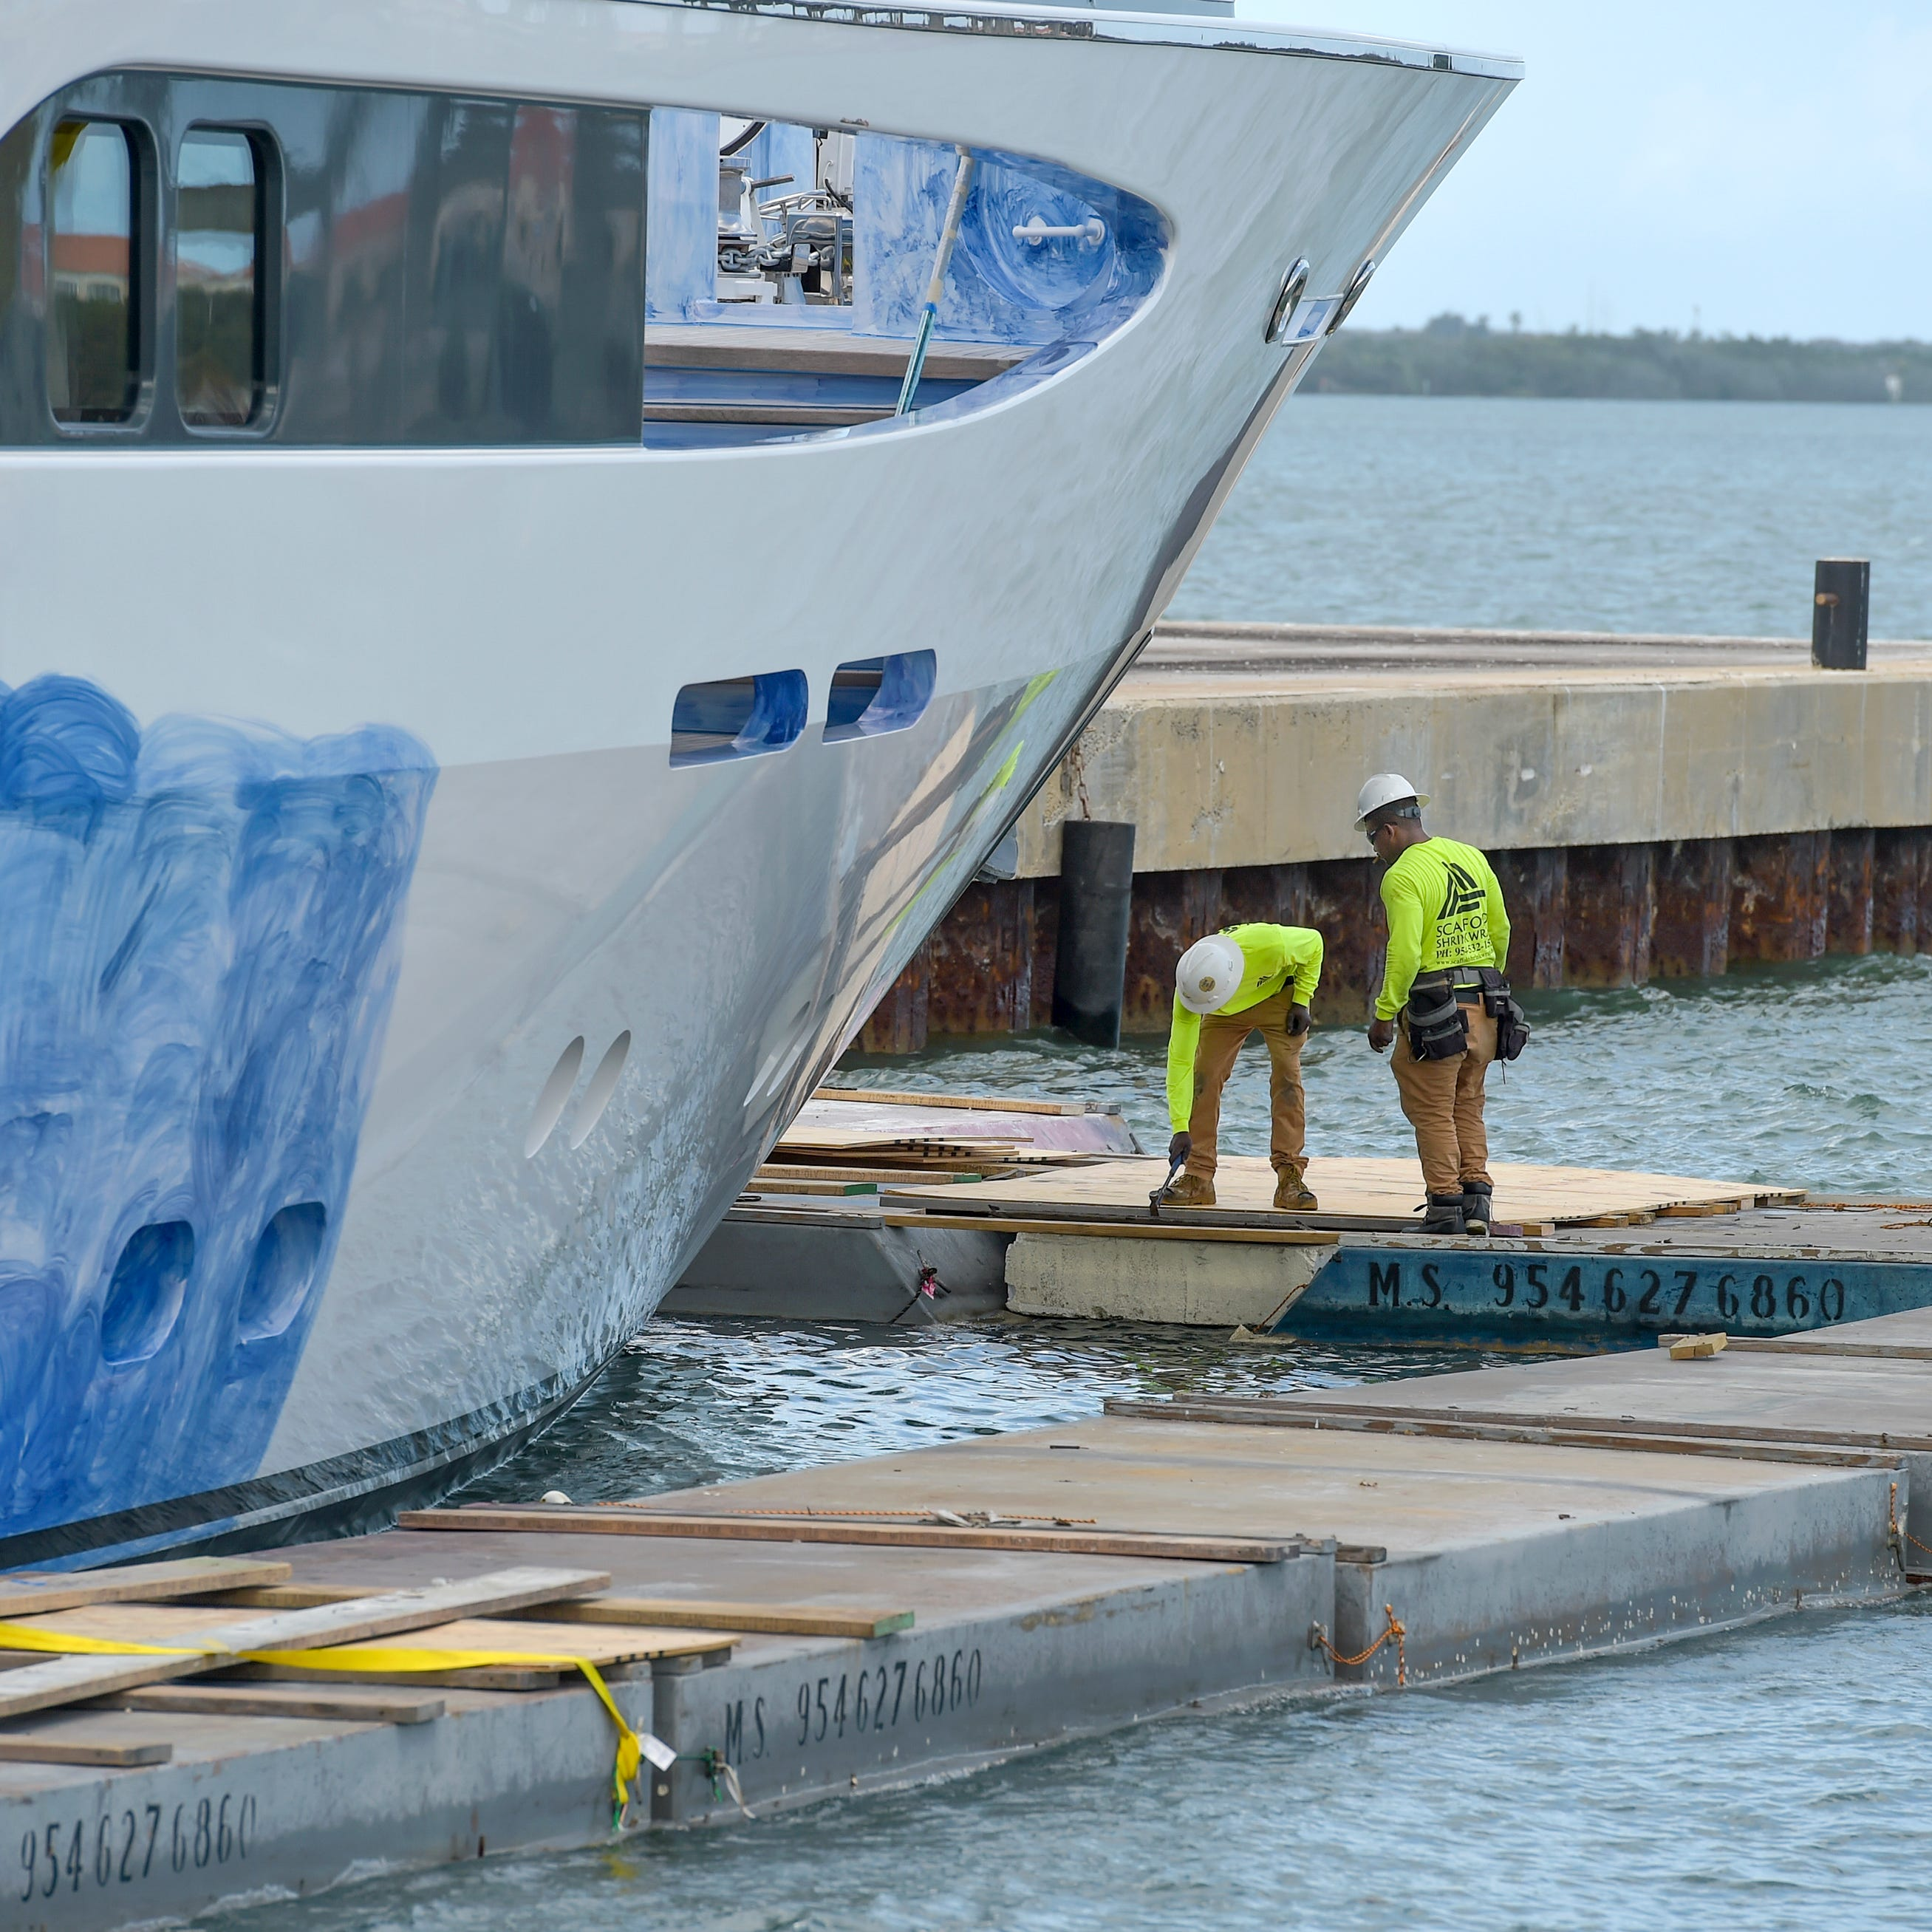 Port of Fort Pierce already is becoming a mega-yacht repair destination